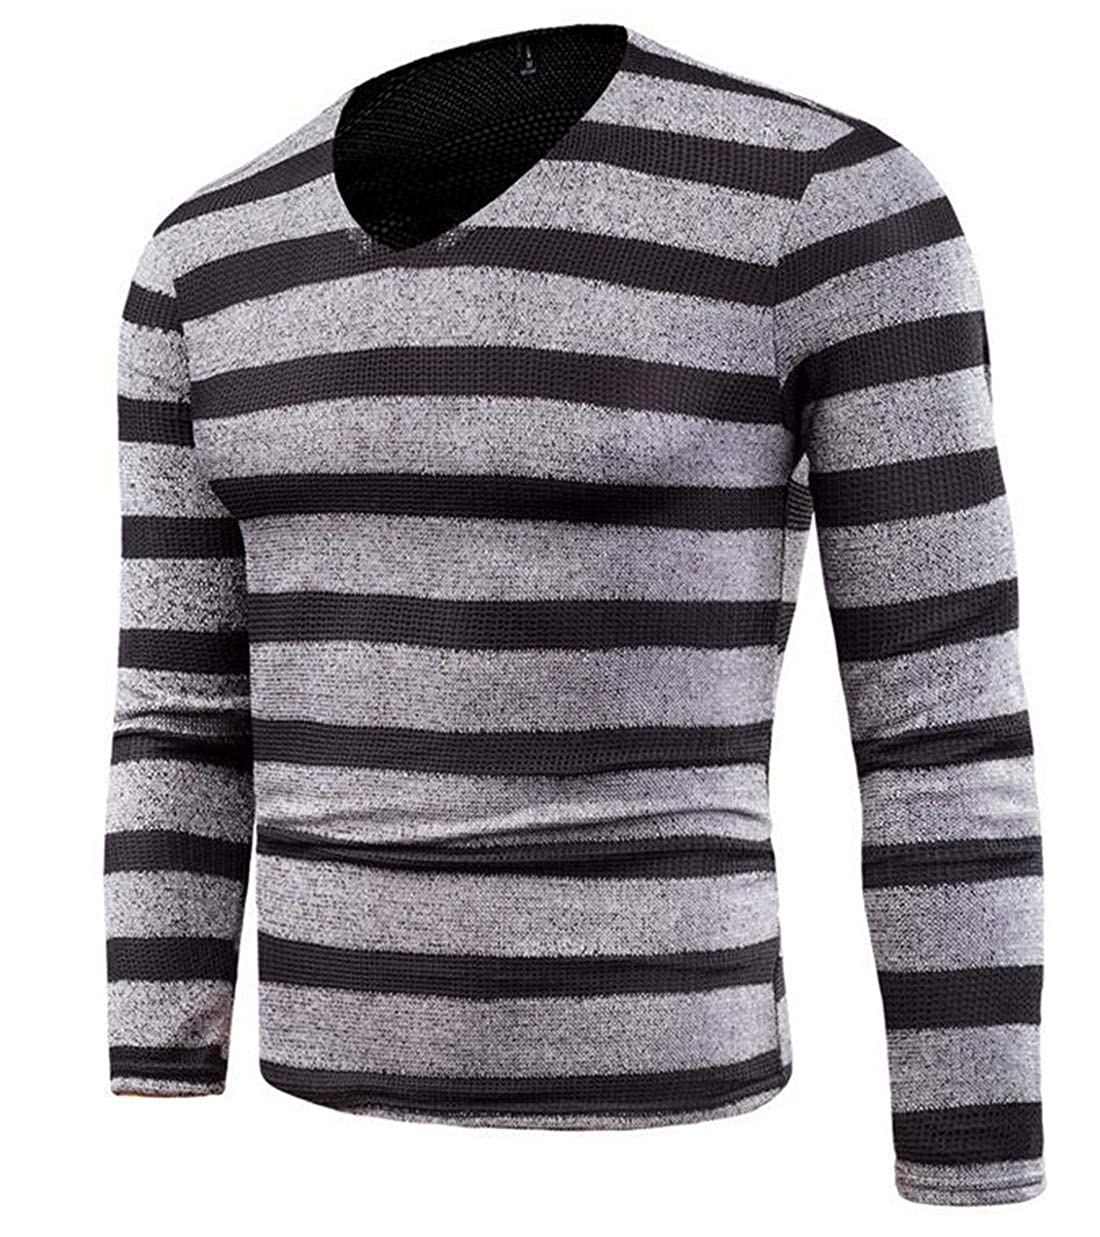 BYWX Men Pullover V Neck Striped Knitted Long Sleeve Casual Top Sweater